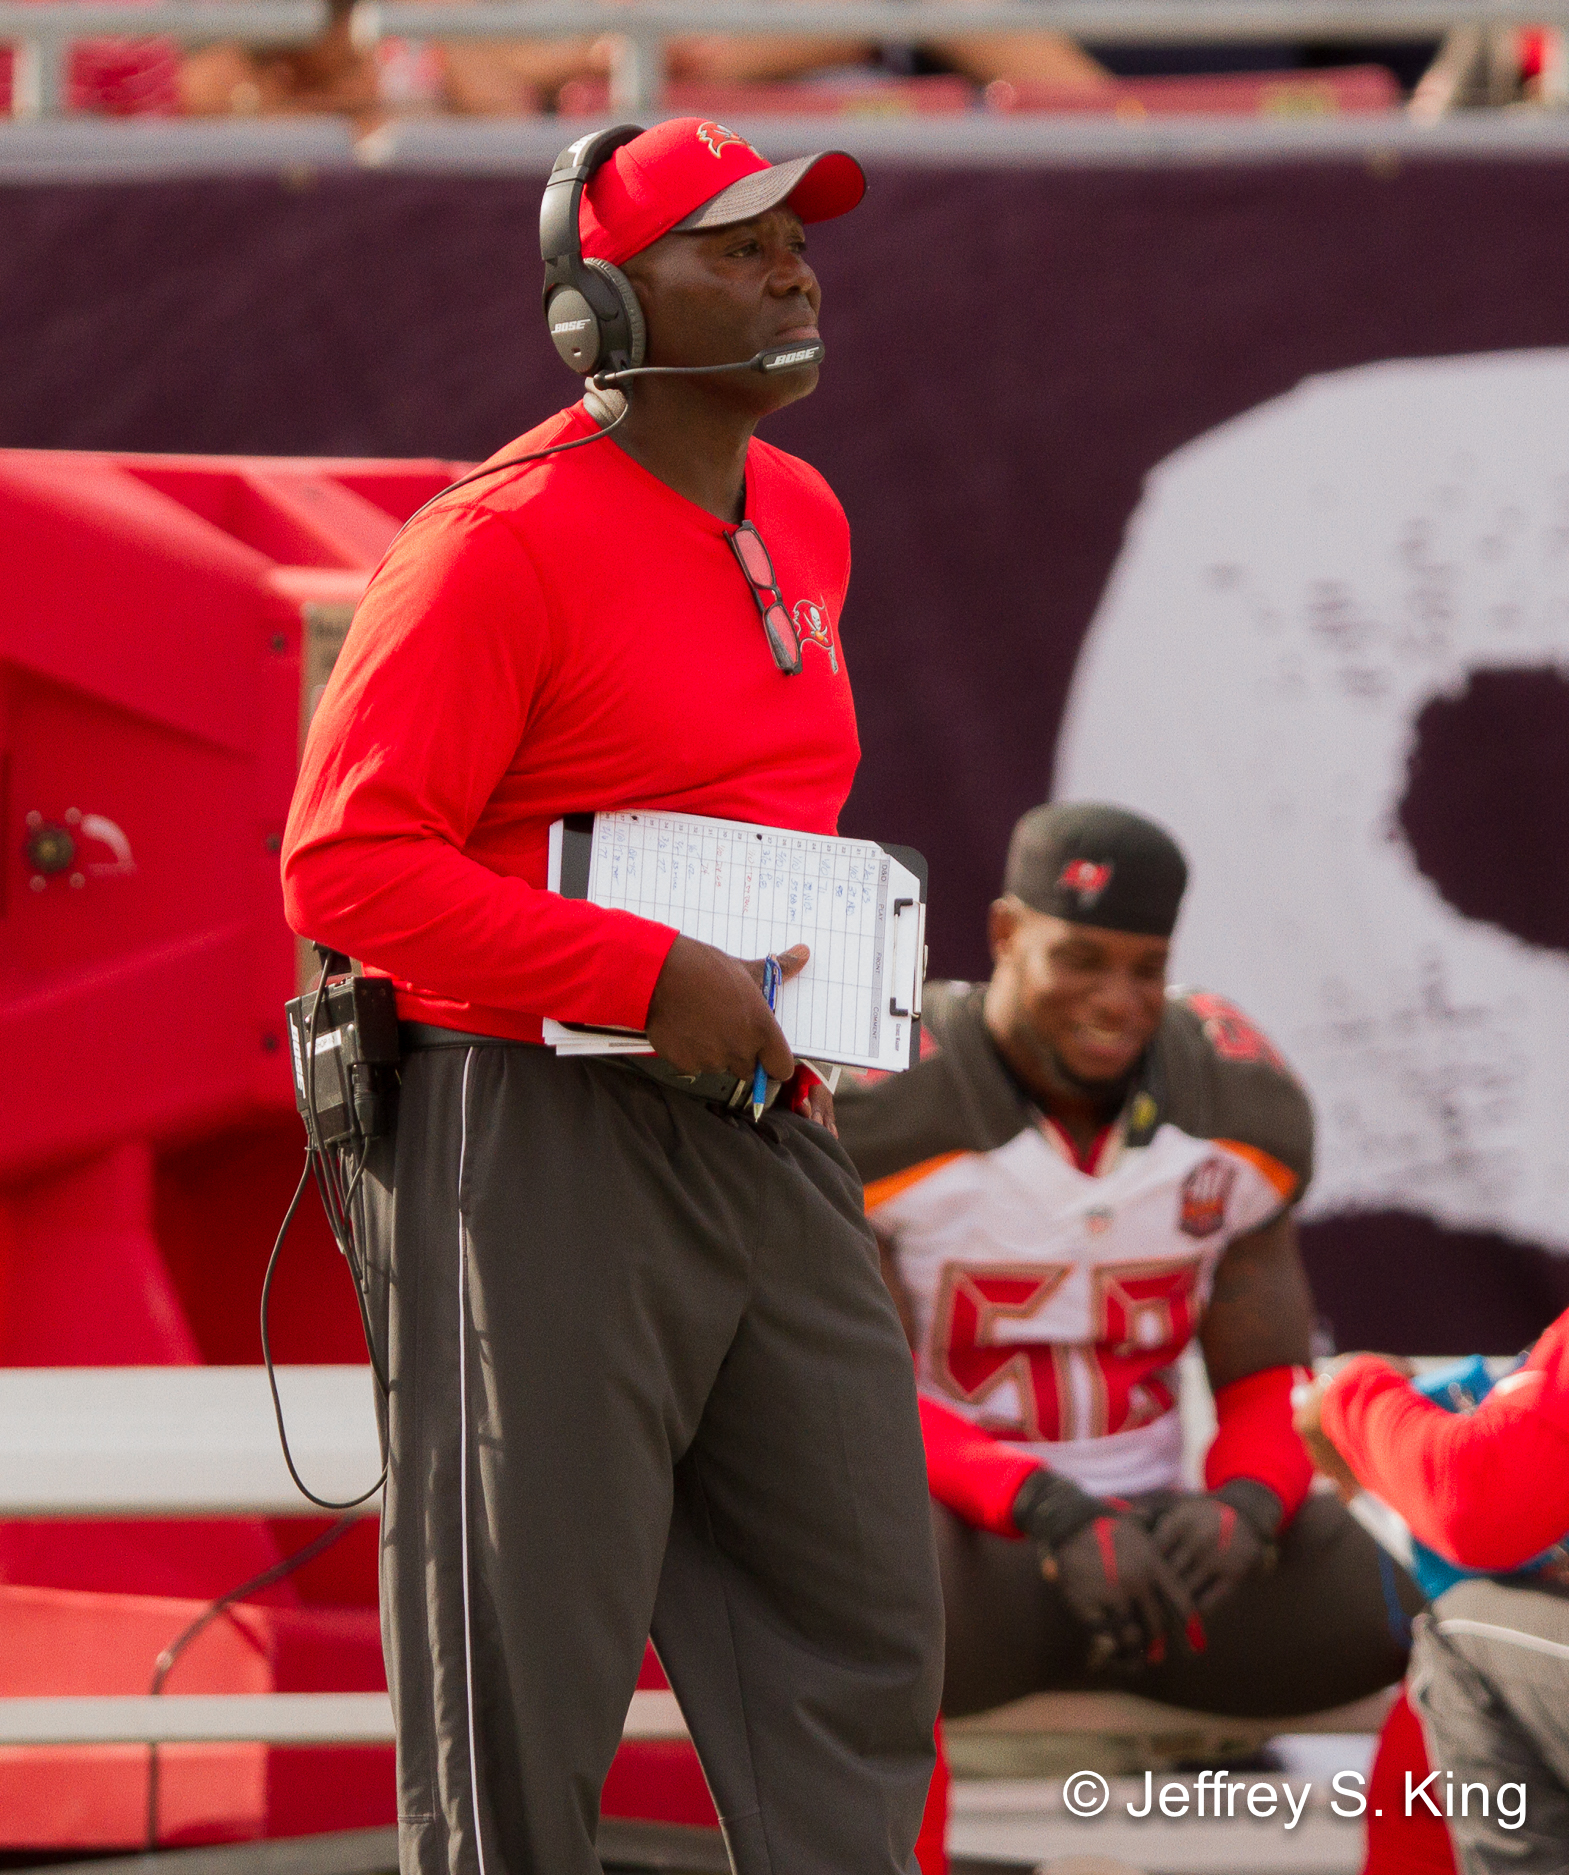 Lovie Smith believes his team will get hot at the right time.